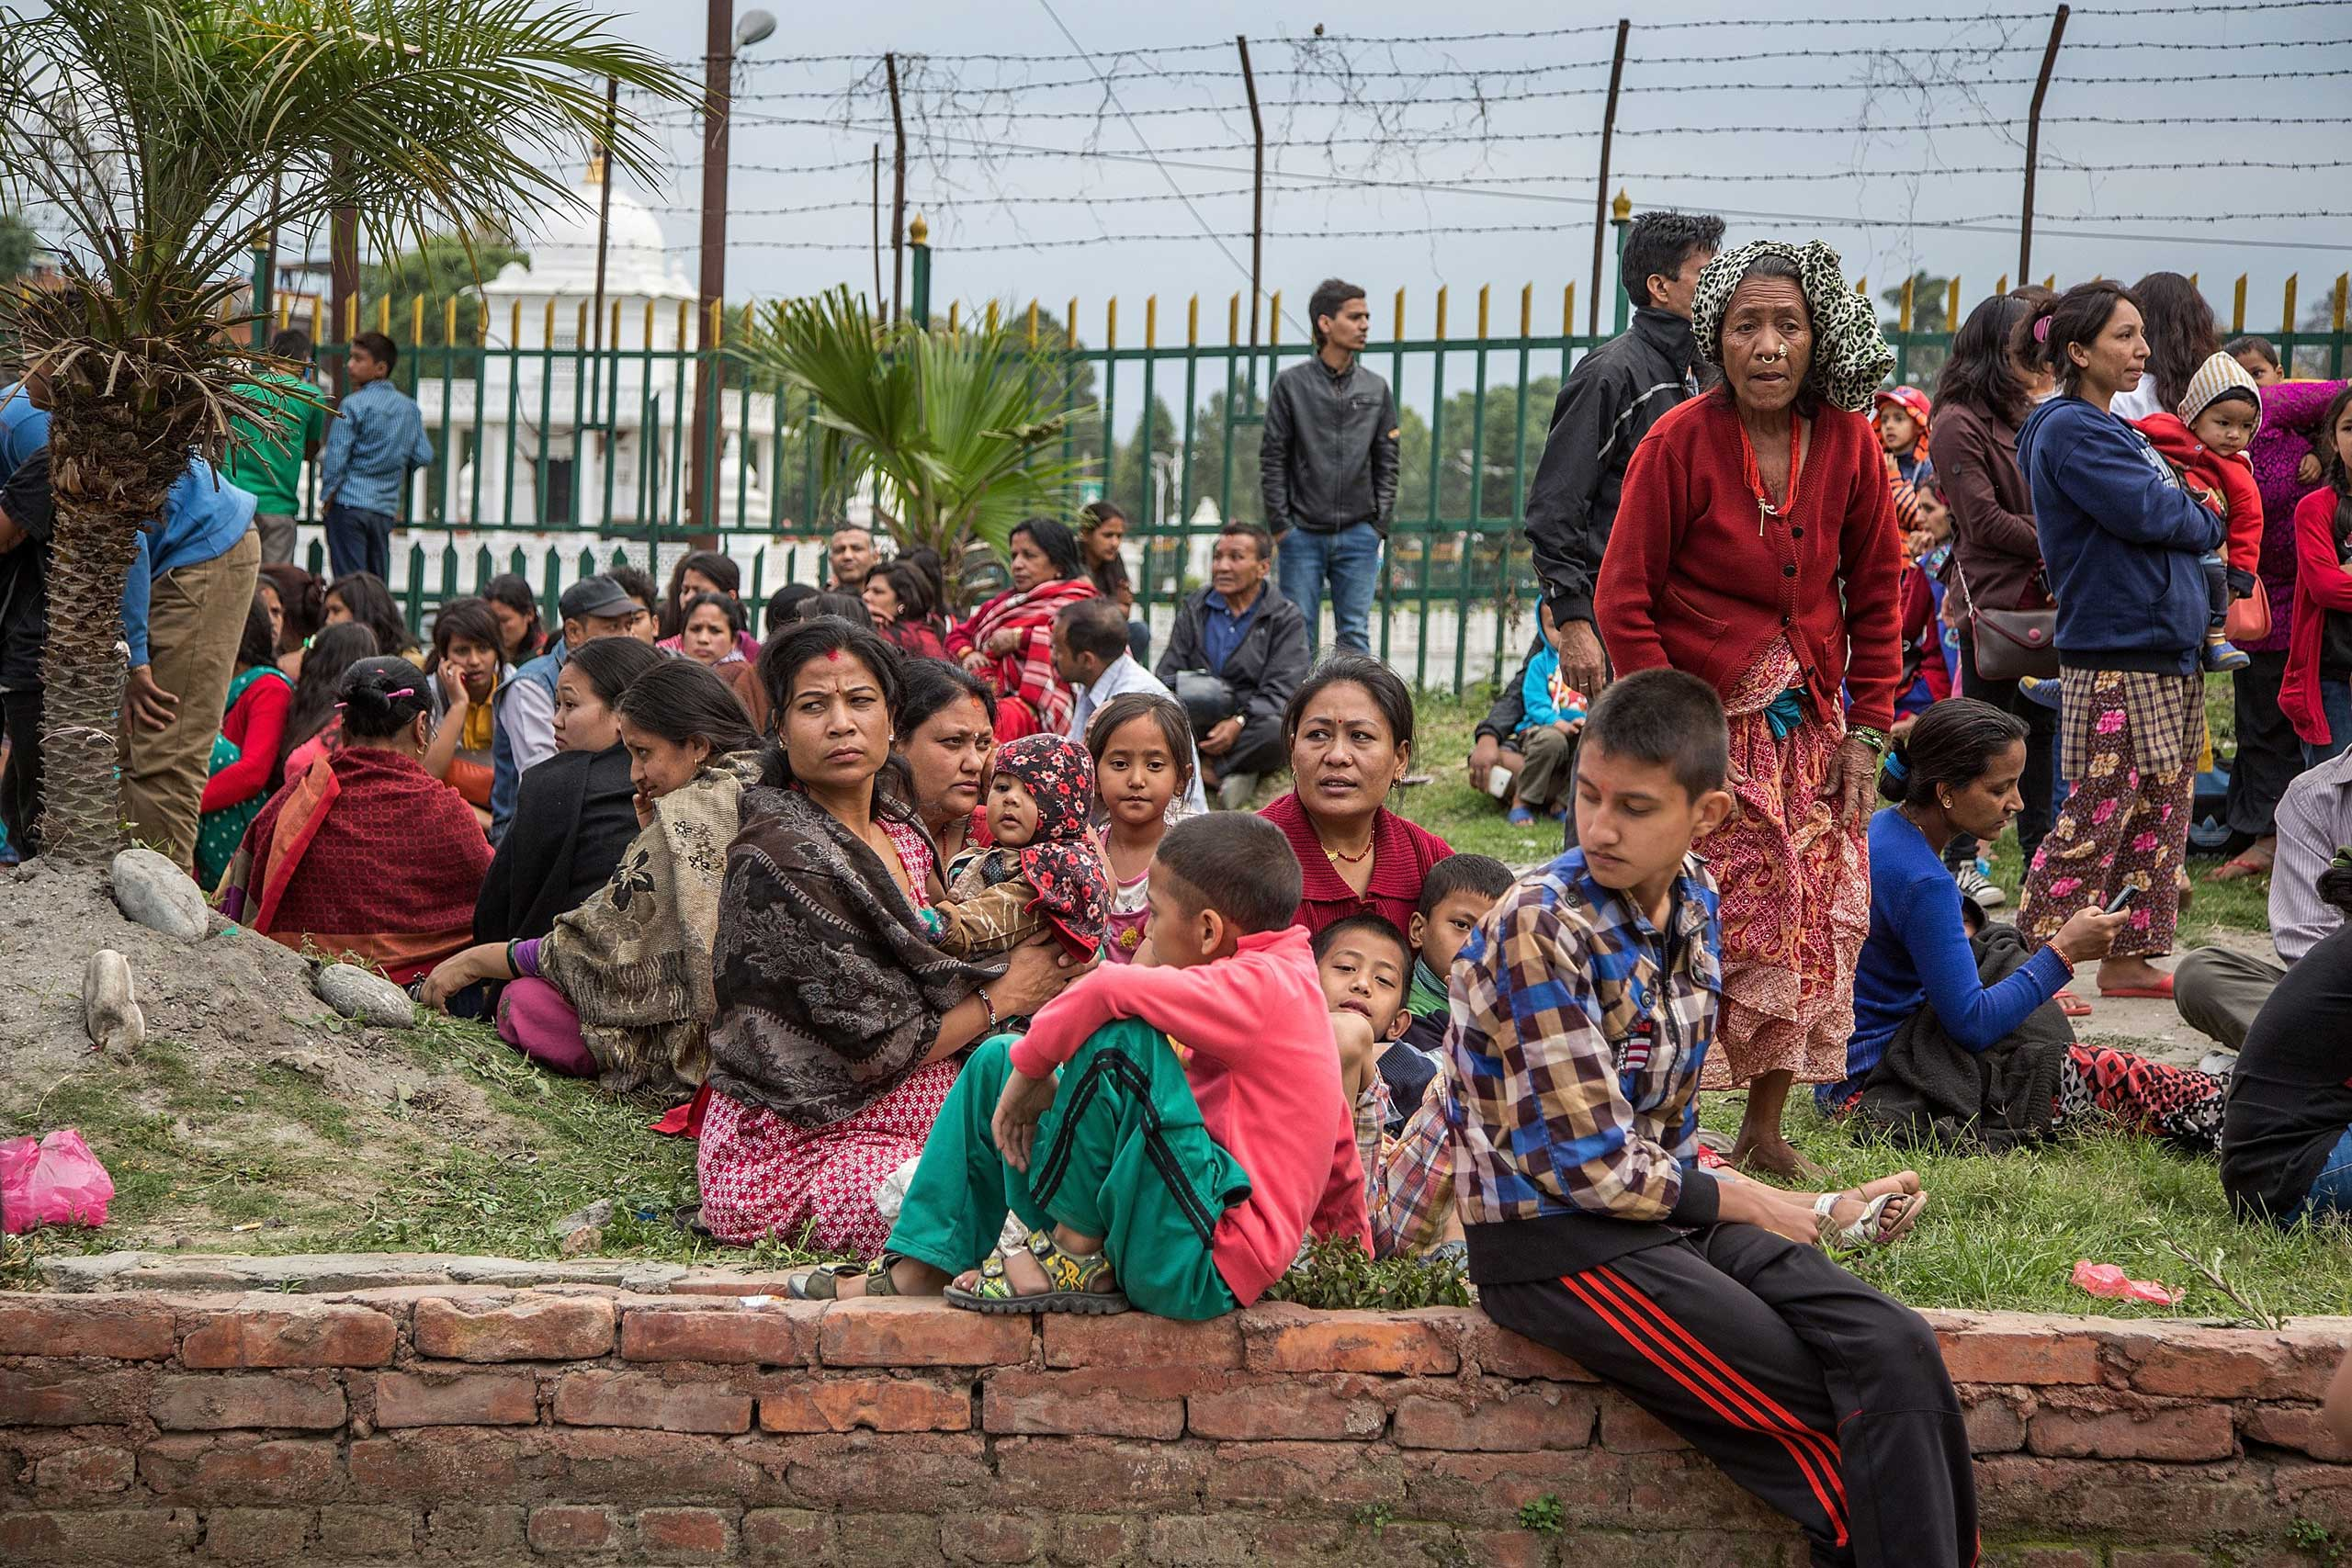 Residents sit in open spaces as aftershocks hit the city following an earthquake in Kathmandu on April 25, 2015.